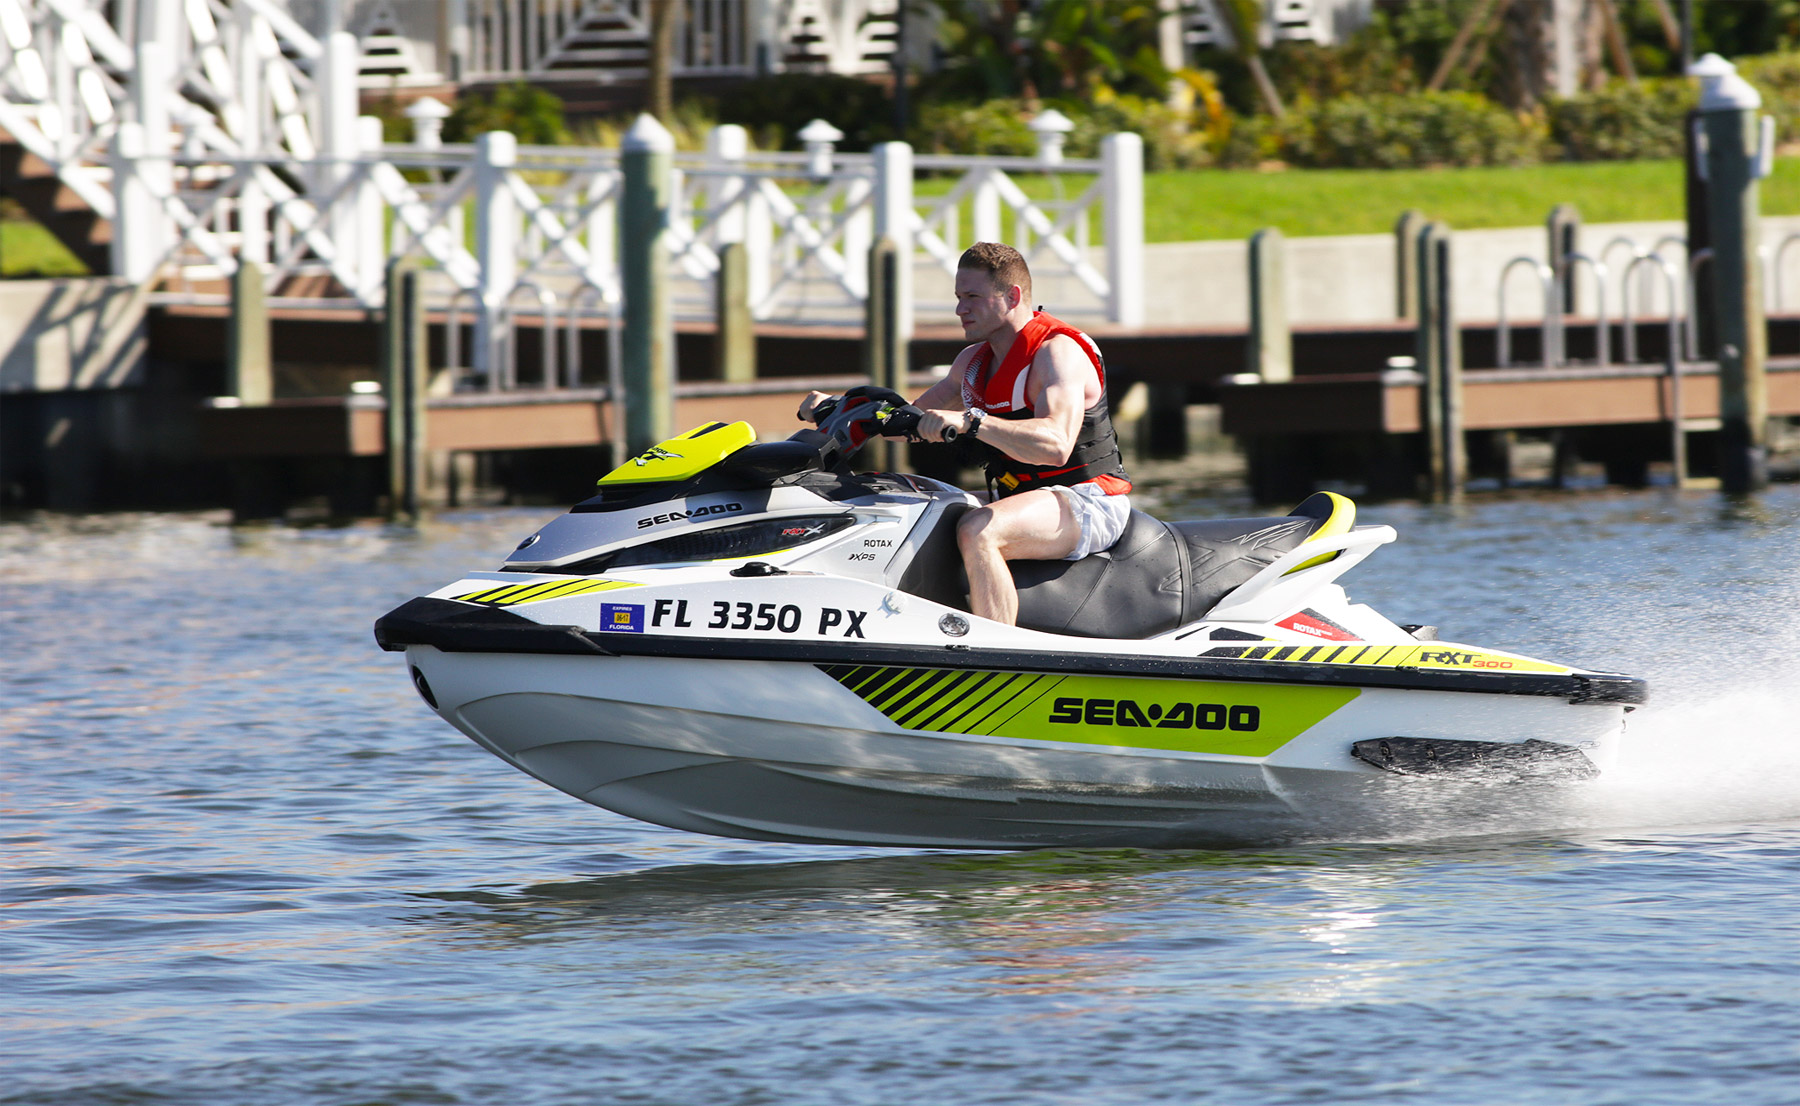 Stefano Andrean Heads To Florida To Experience The 2017 Seadoo Line-up